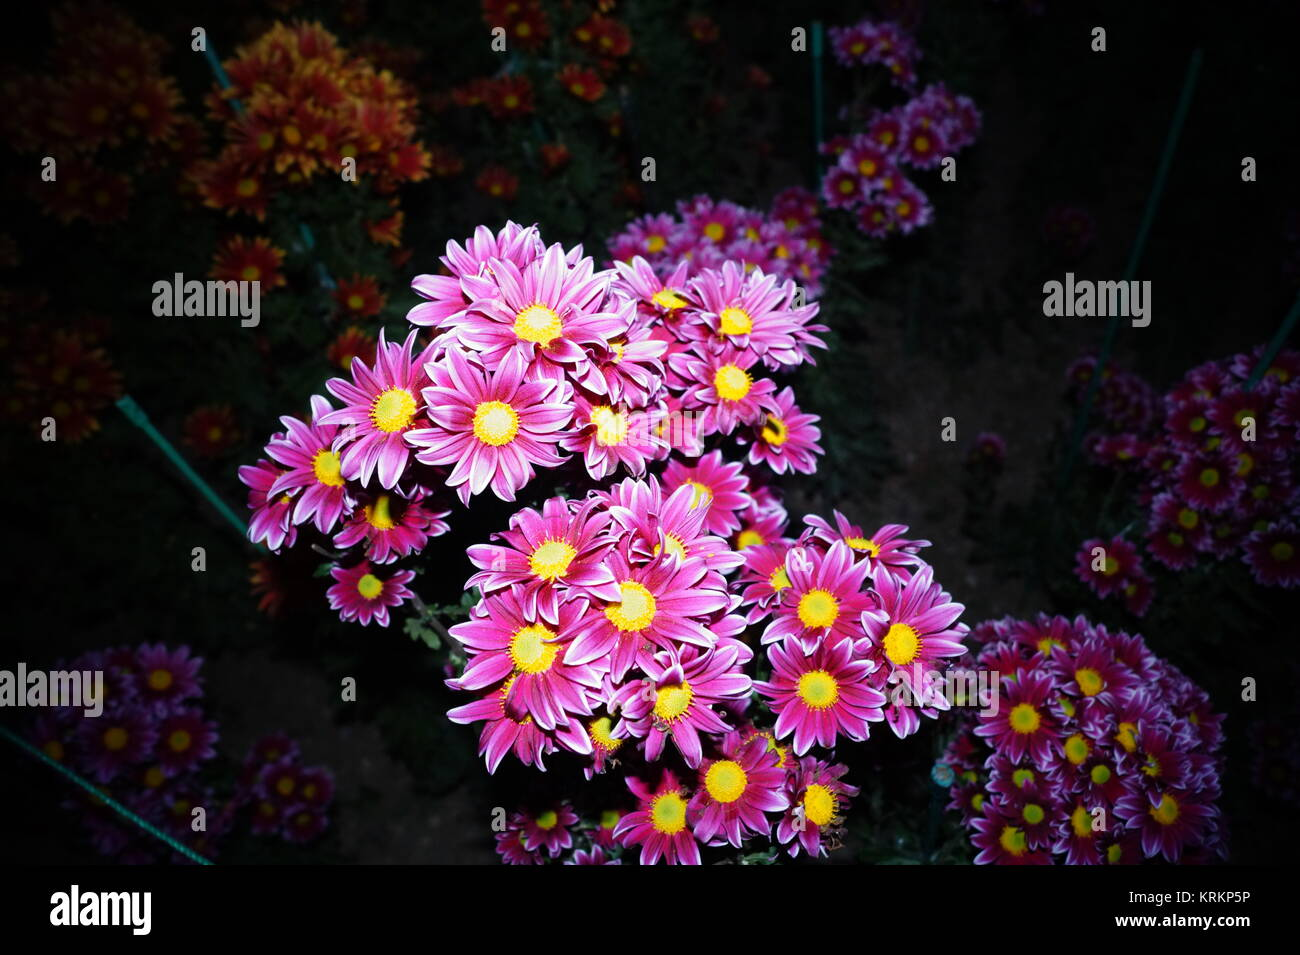 chrysanthemum - Stock Image